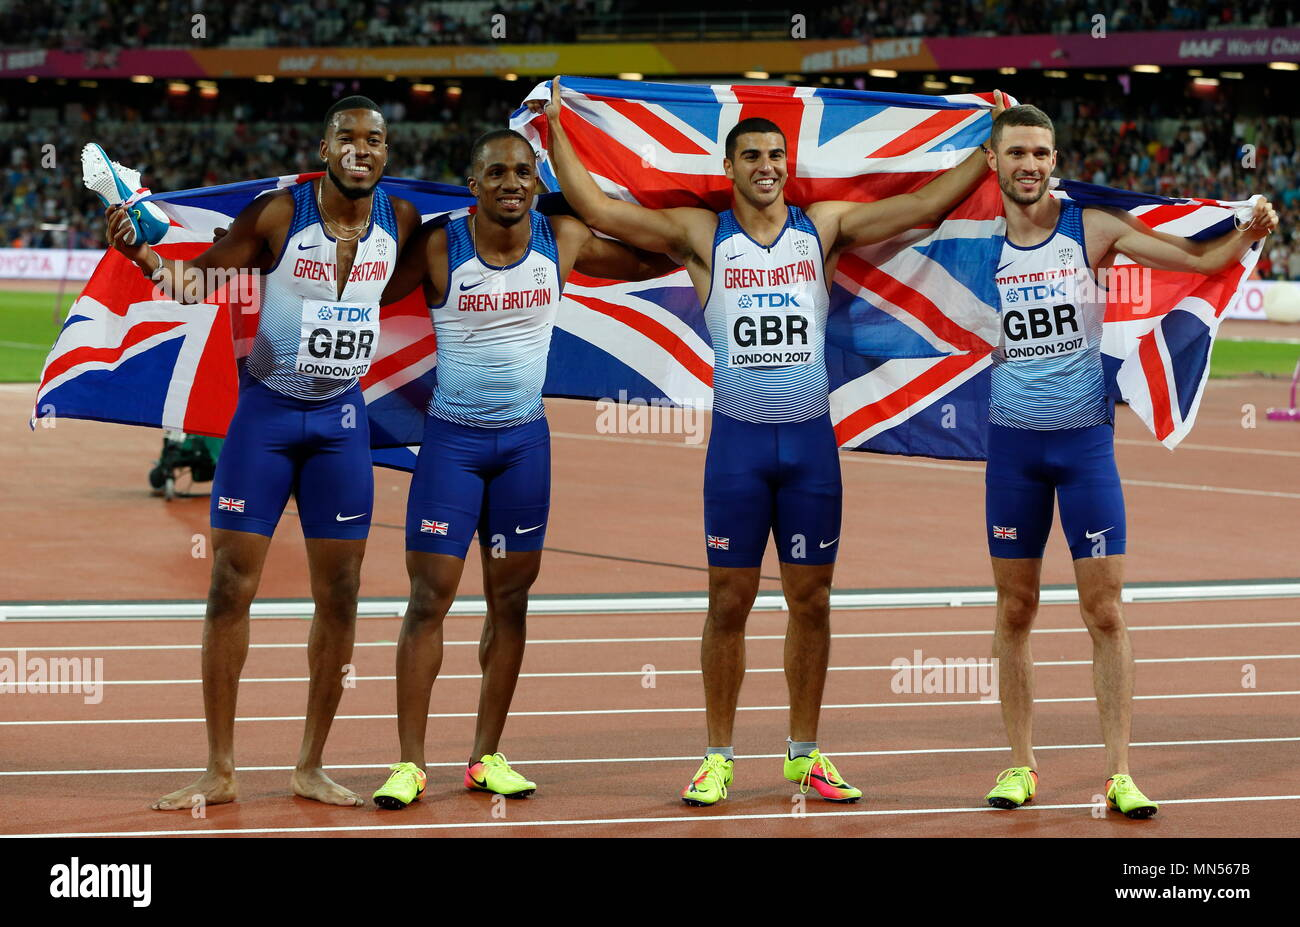 LONDON, ENGLAND - AUGUST 12: Chijindu Ujah, Adam Gemili, Daniel Talbot and Nethaneel Mitchell-Blake of Great Britain celebrate winning gold in the Men's 4x100 Relay final during day nine of the 16th IAAF World Athletics Championships London 2017 at The London Stadium on August 12, 2017 in London, United Kingdom. - Stock Image